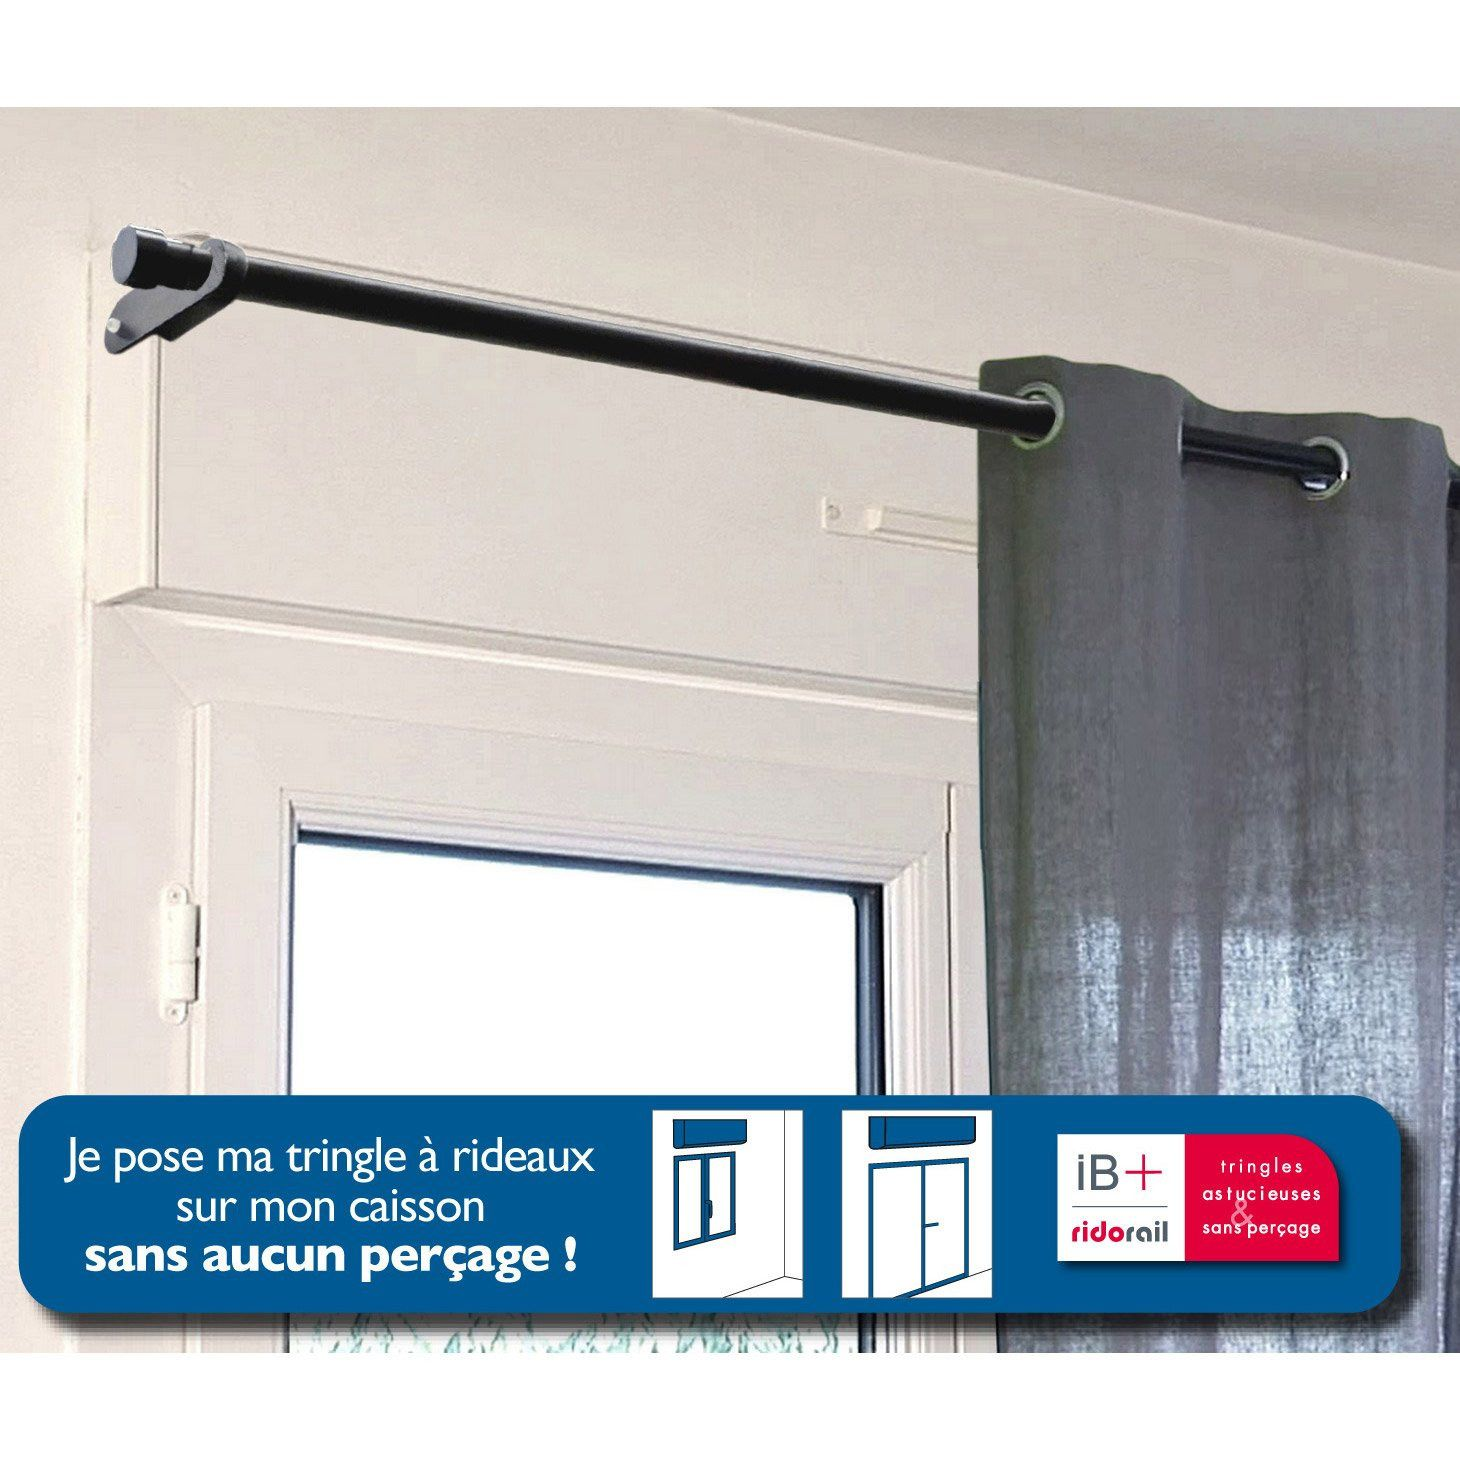 Tringle A Rideau Sans Percer Pour Caisson 2 Supports Sans Percage Colours Quadra Blanc Ø28 Mm Tende Cortinas